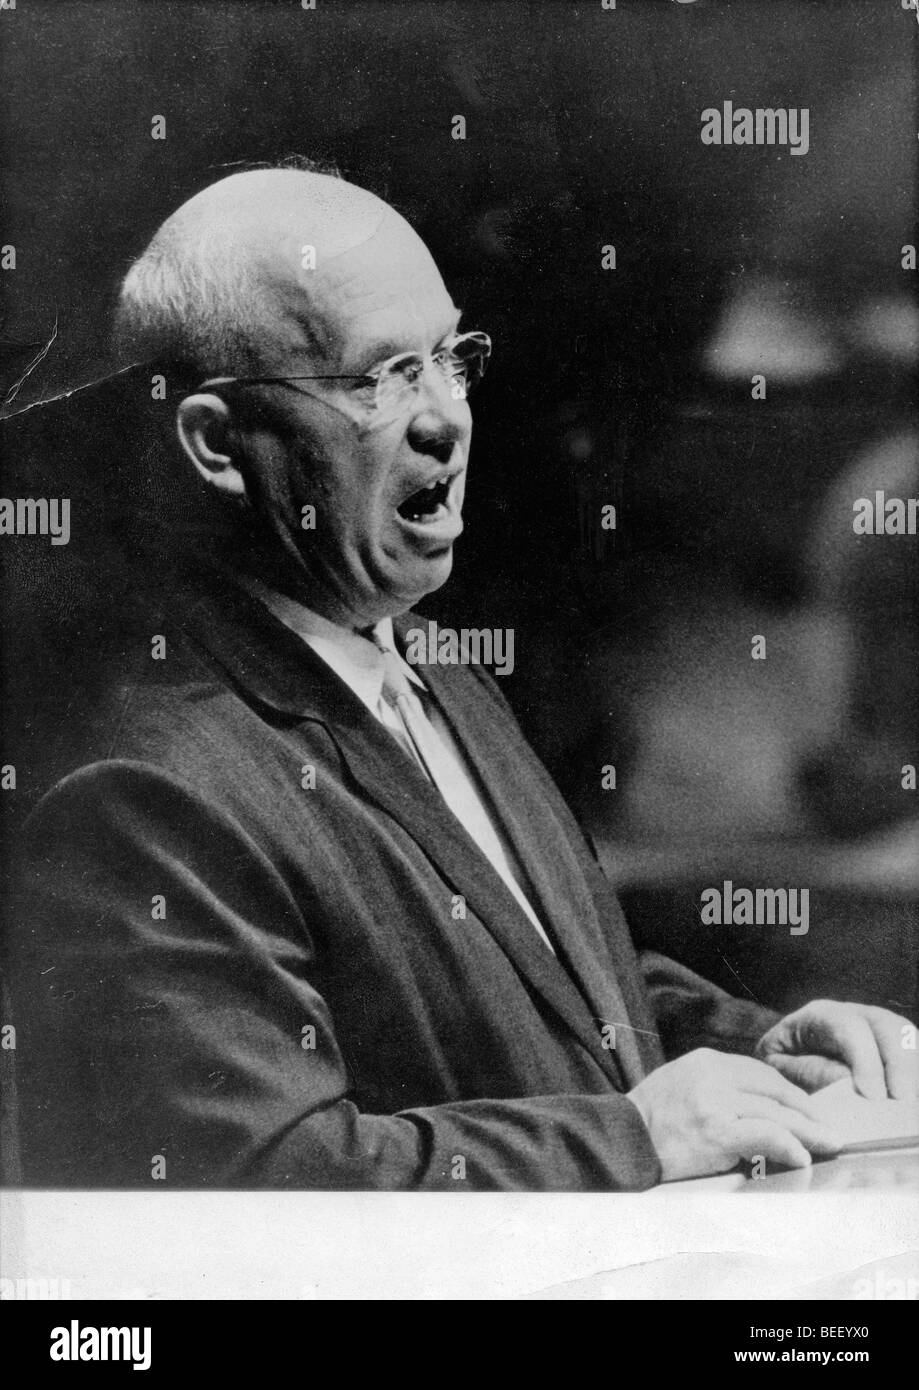 Soviet leader Nikita Khrushchev speaks at the UN General Assembly held at the United Nations building in New York. Stock Photo